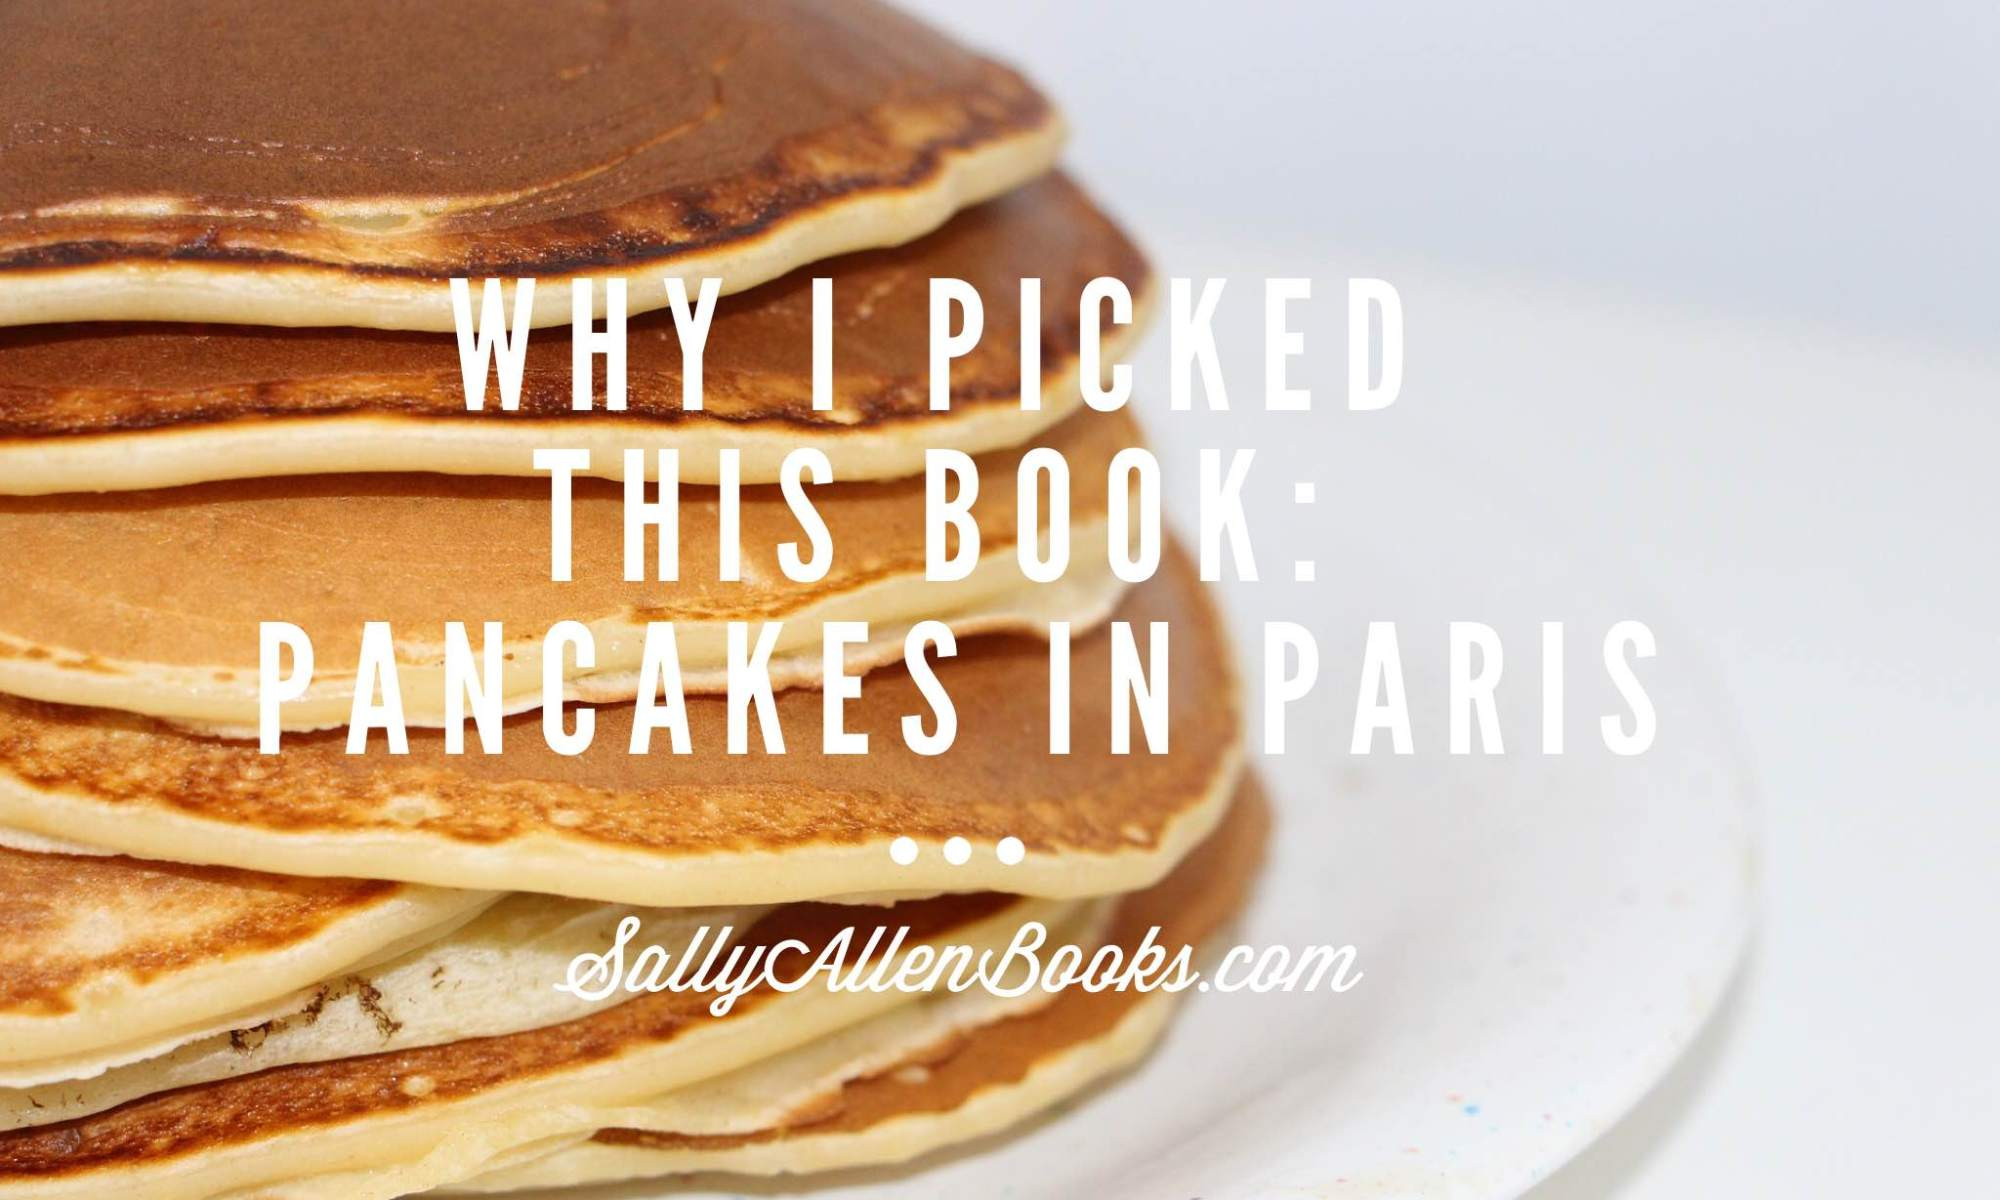 Sometimes we choose books for reasons so personal, it seems no marketing algorithm could possibly account for them. Case in point for me: Pancakes in Paris.